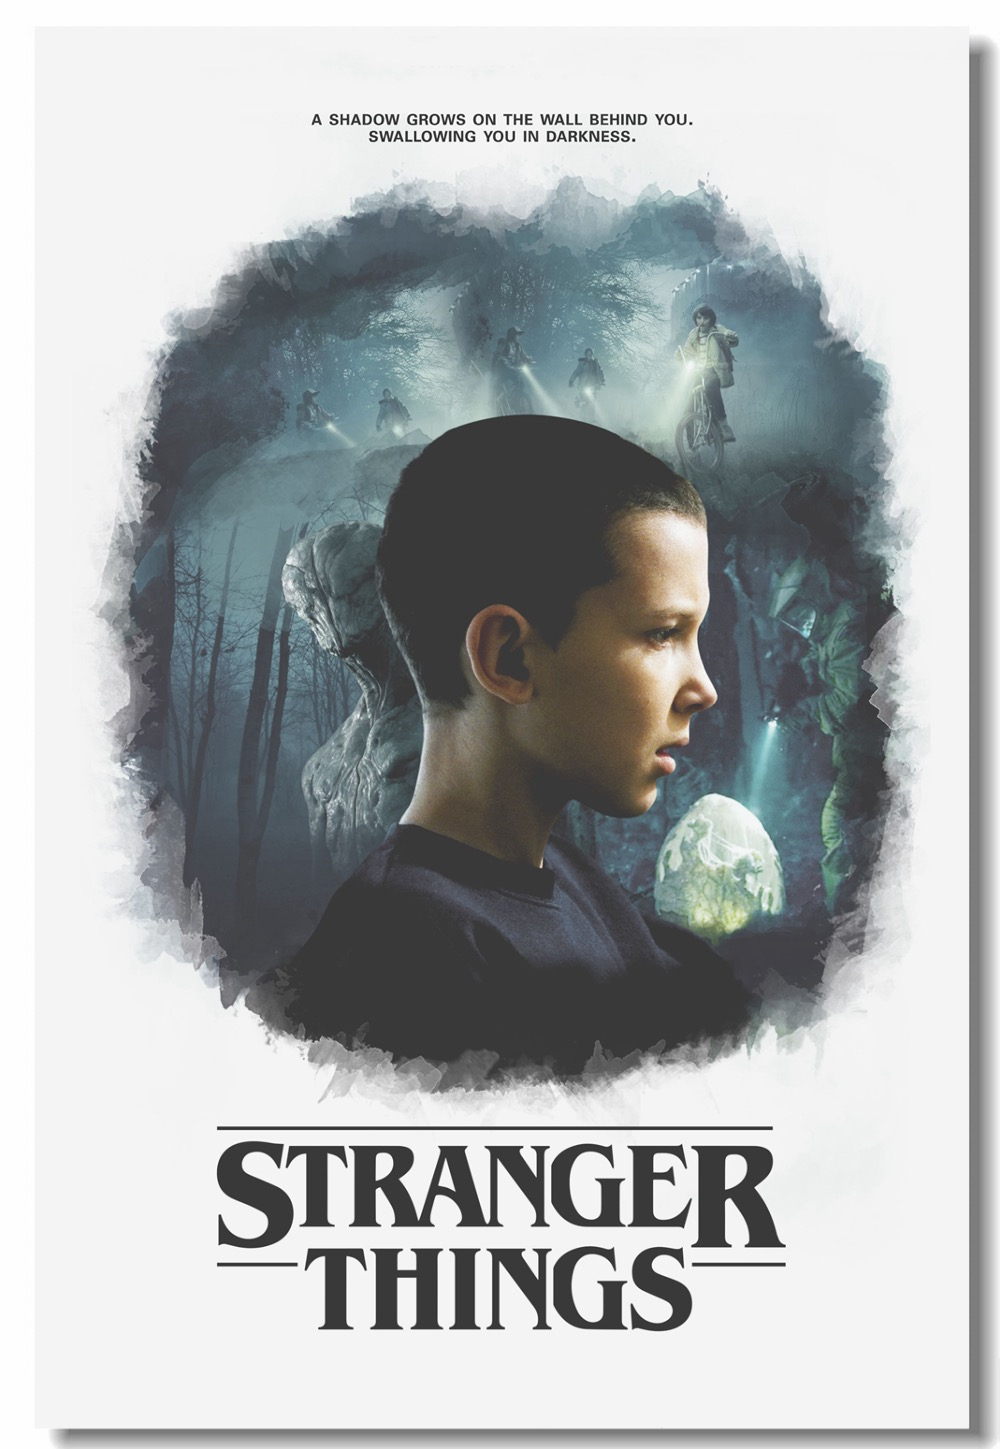 Us 559 30 Offcustom Canvas Wall Painting Stranger Things Poster Stranger Things Tv Wall Stickers Eleven Millie Mural Bedroom Wallpaper 0237 In